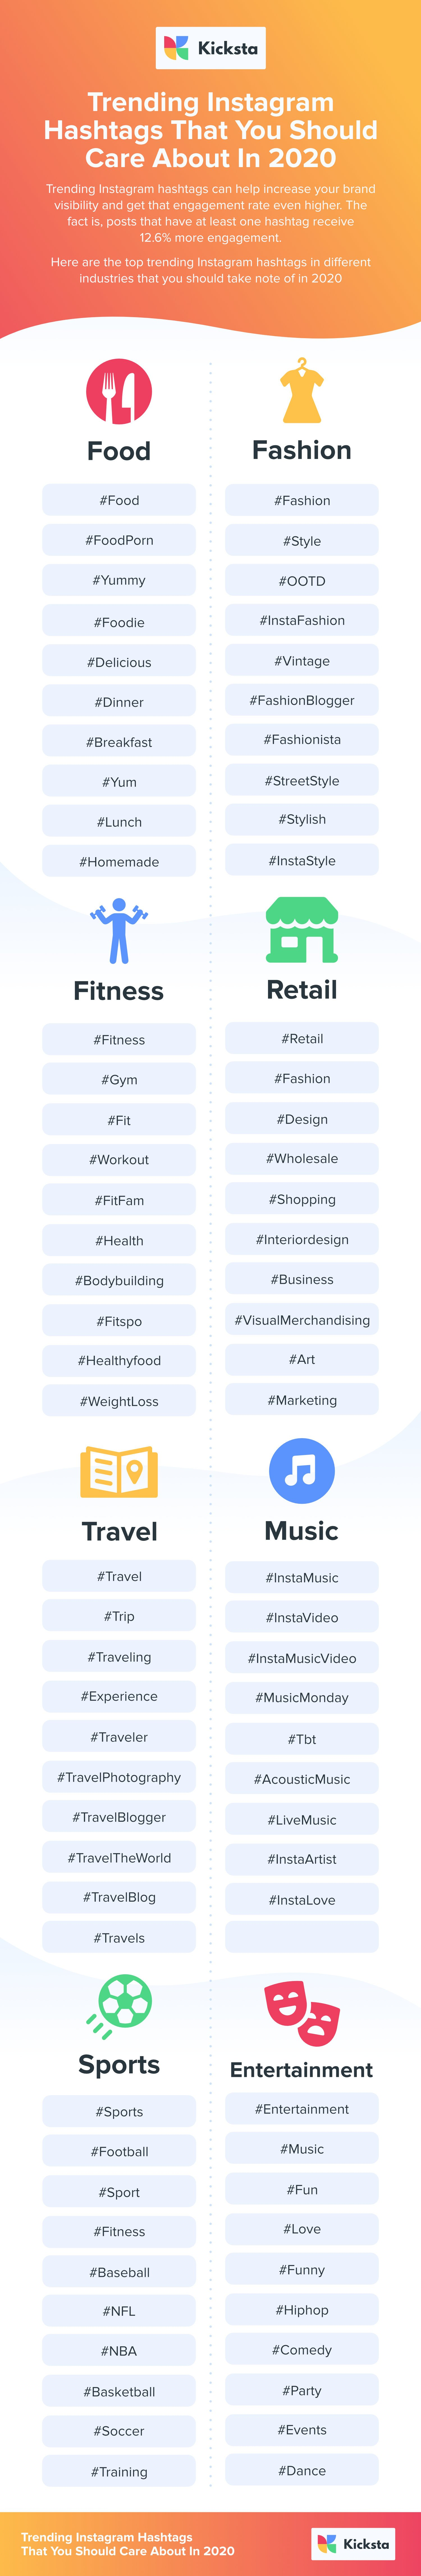 Trending hashtags infographic